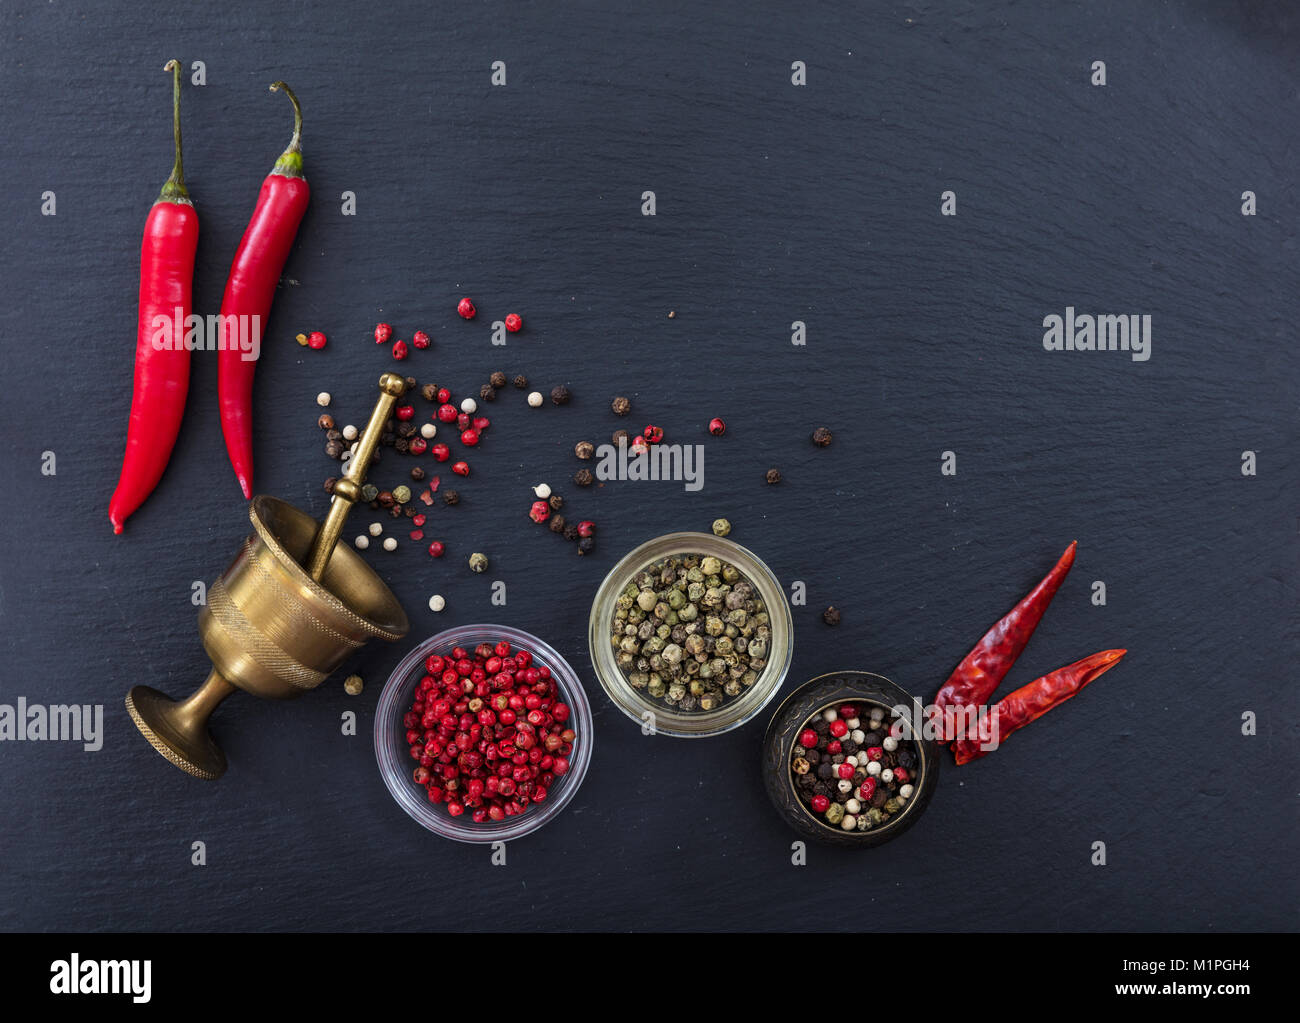 Various peppercorns and peppers and a brass pepper mill on black stone background, top view, copy space - Stock Image